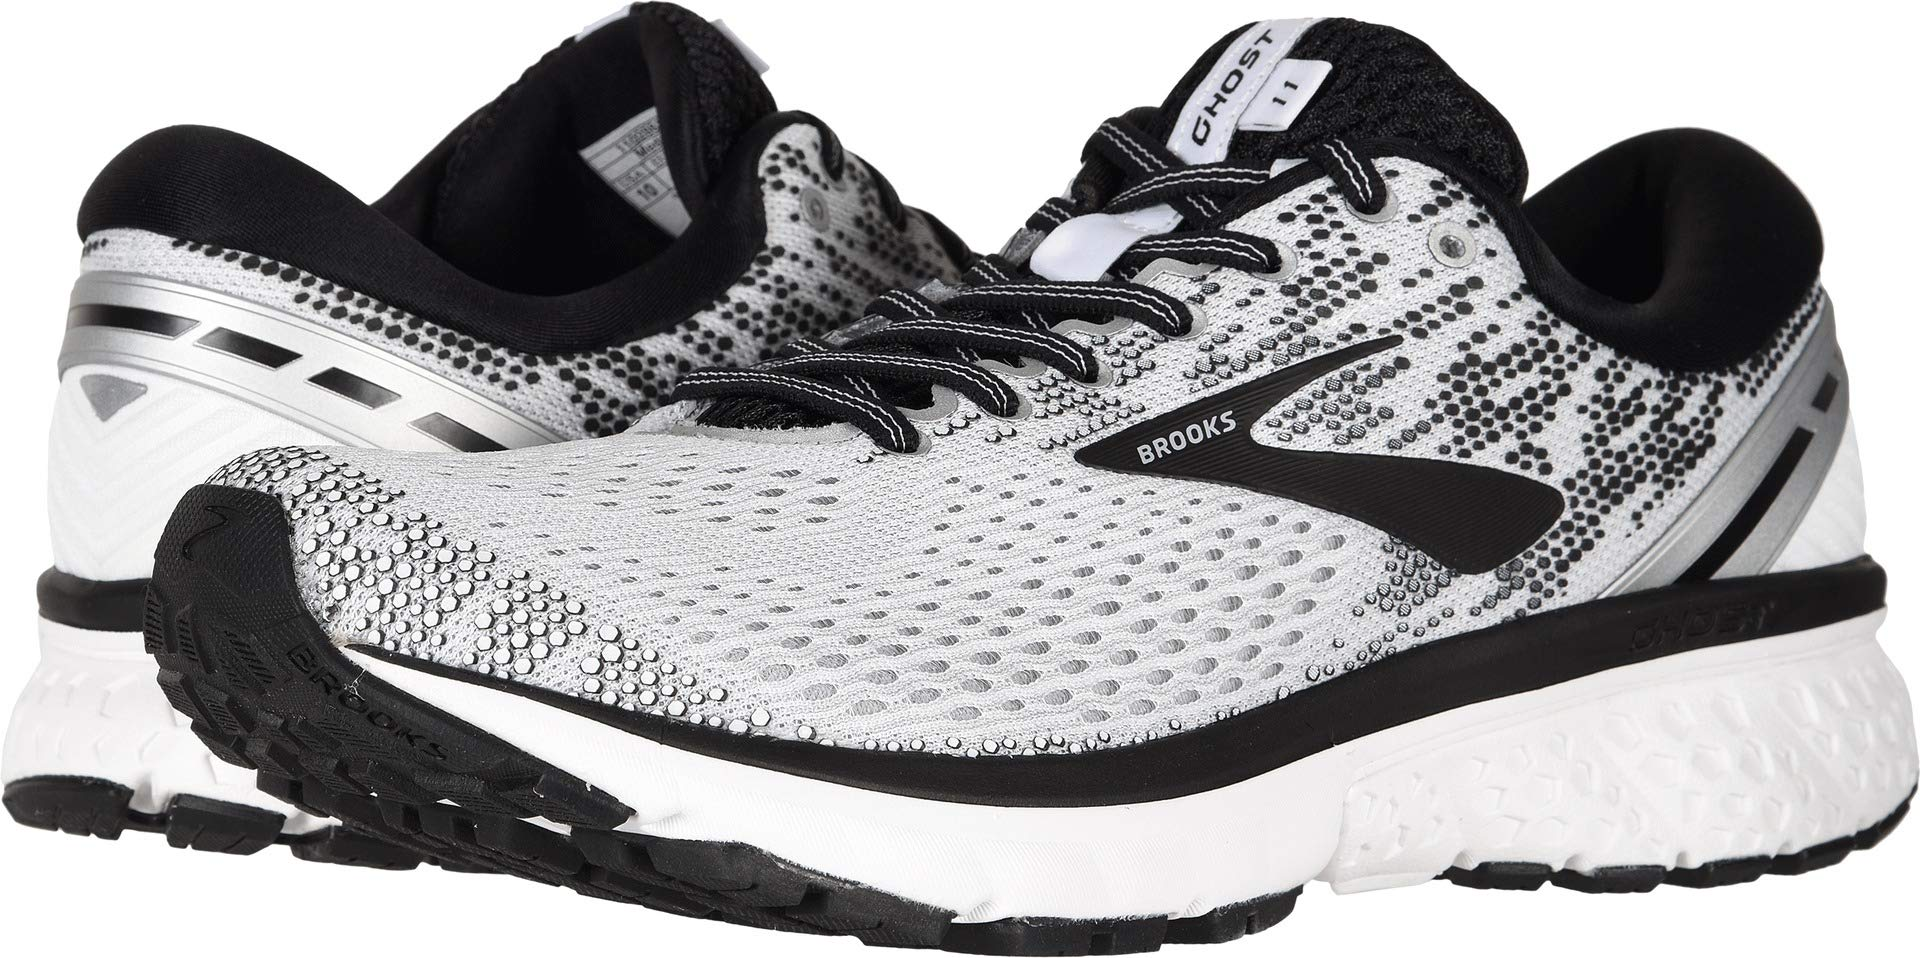 Brooks Men's Ghost 11 White/Black/White 12 D US D (M) by Brooks (Image #3)